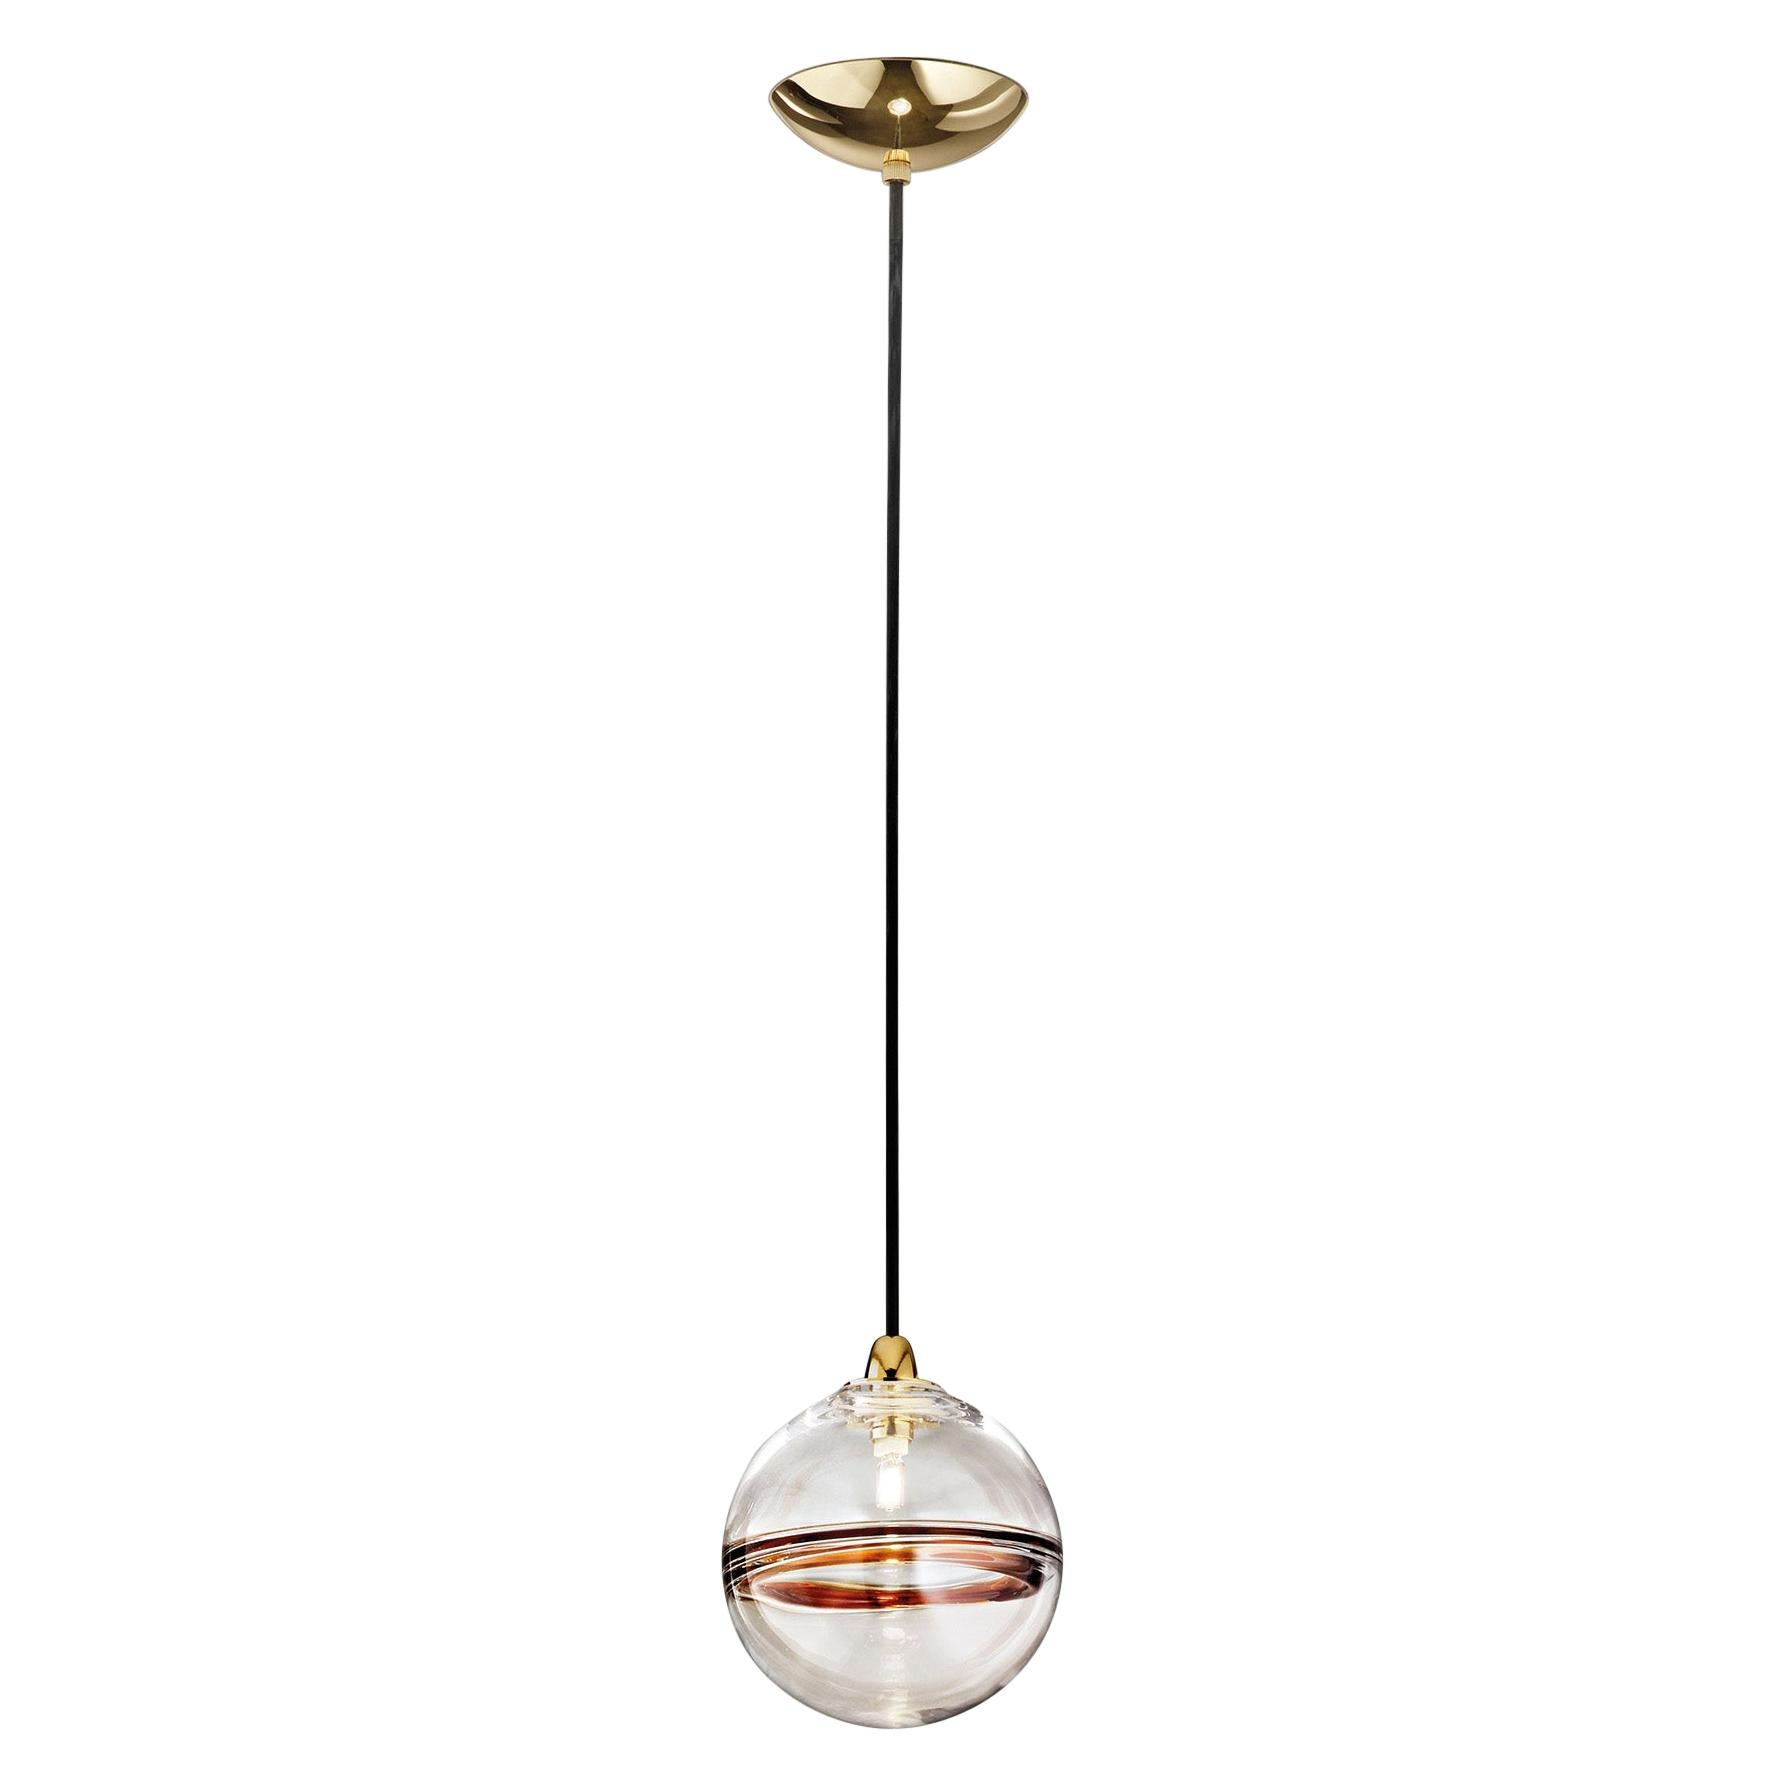 LED Oro SP P Suspension Light with Brass Frame by Vistosi